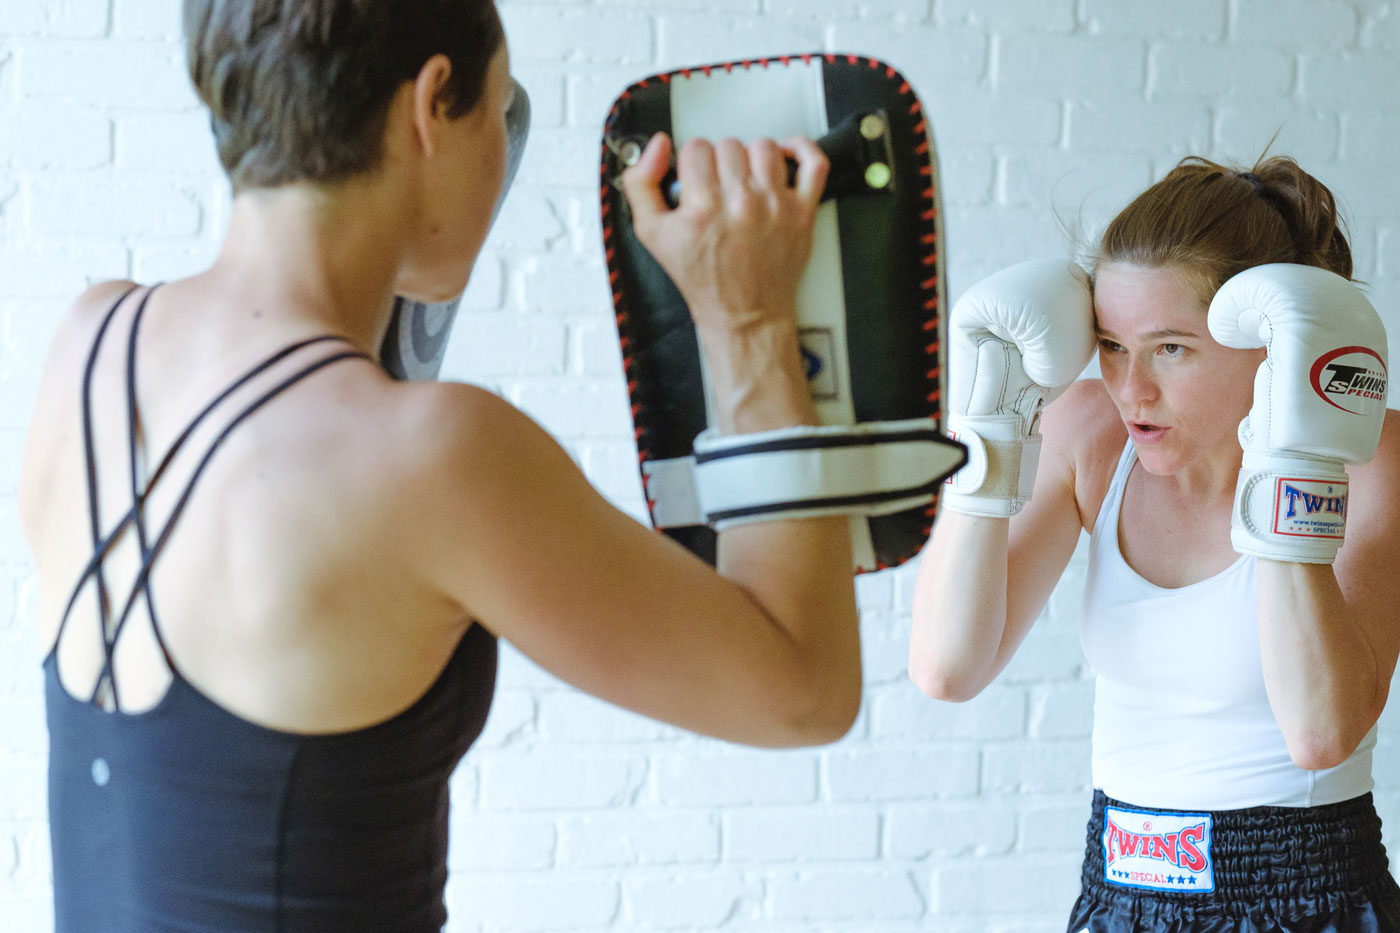 This is Nikki and Susanna boxing